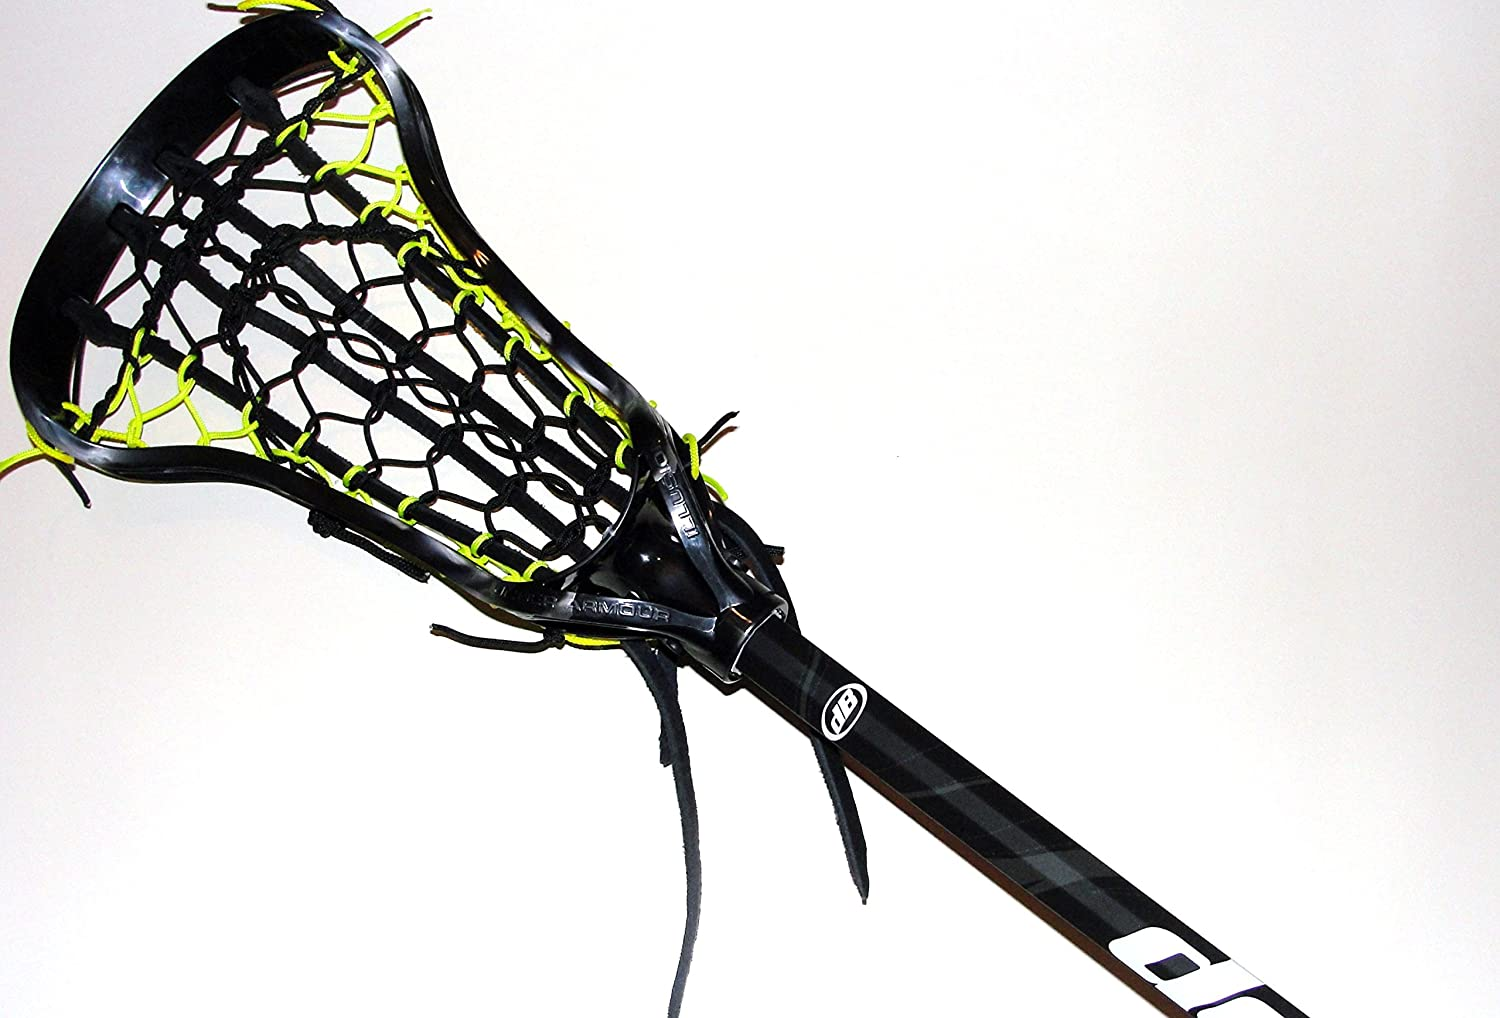 Amazon.com : Custom Strung Womens Lacrosse Stick ~ Under Armour Illusion Head with a Traditional Pocket- Debeer Triax Shaft : Sports & Outdoors